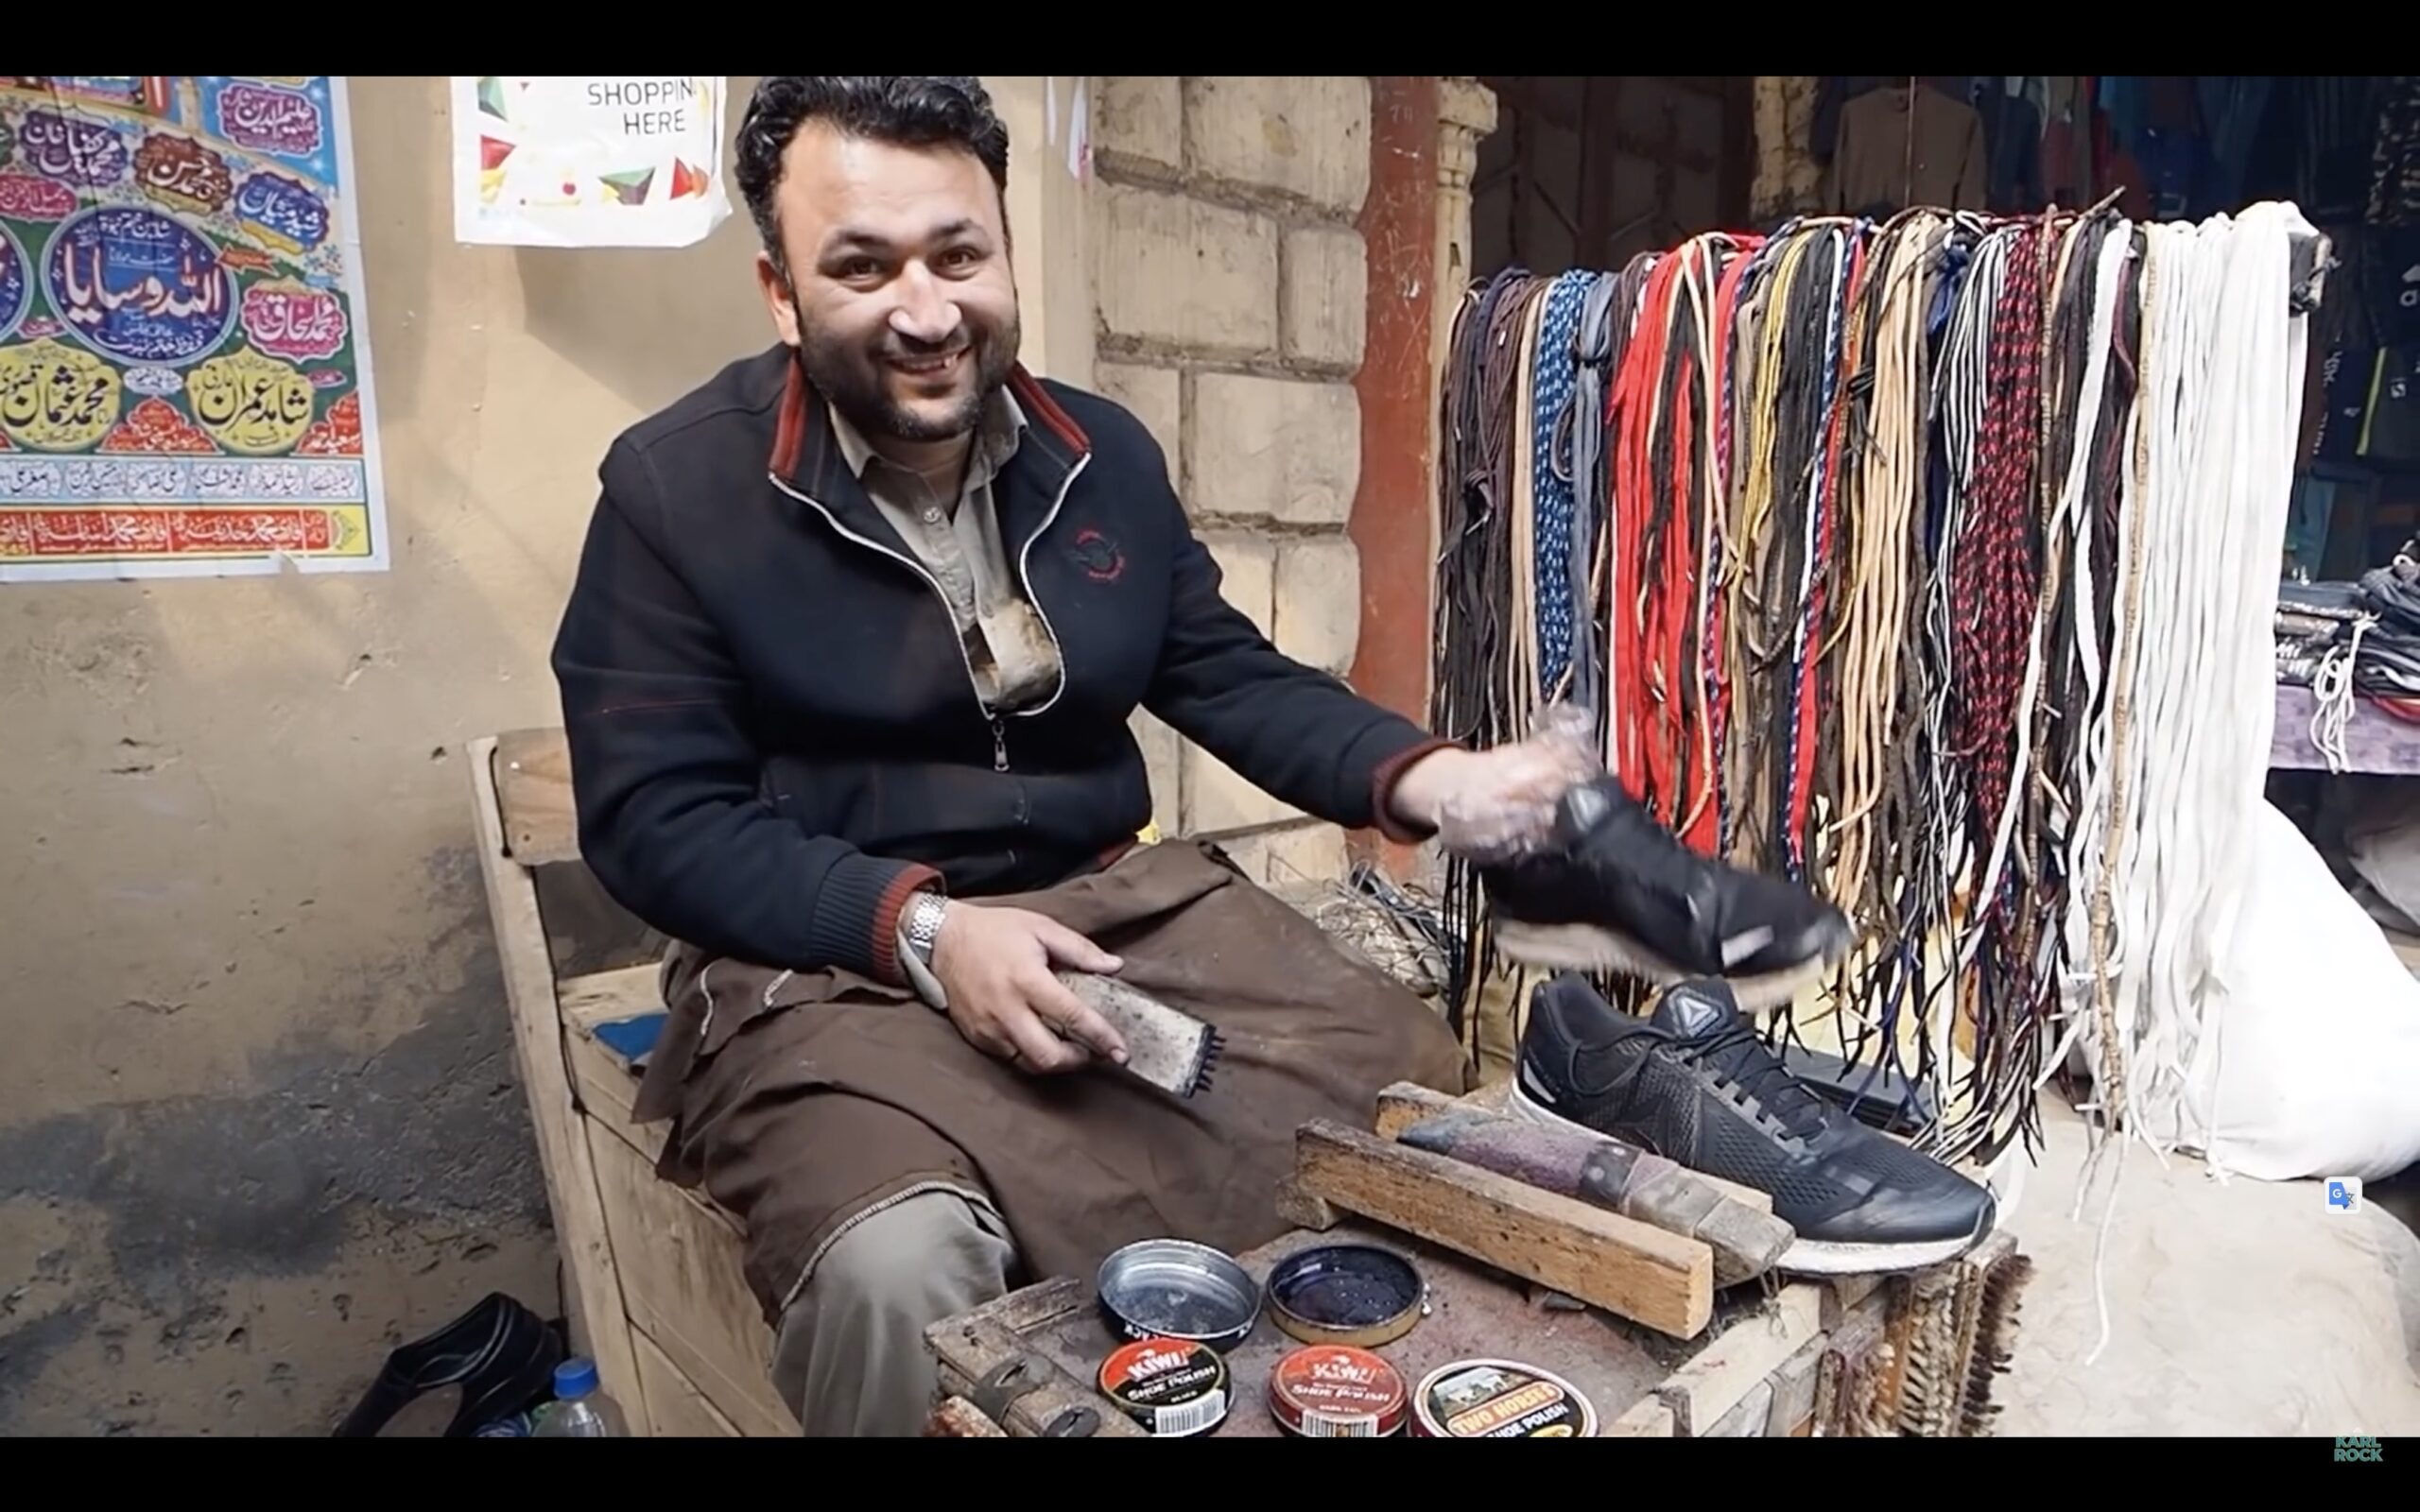 Check out the difference between a 20-cent shoeshine and a $2 dollar shoeshine in Pakistan